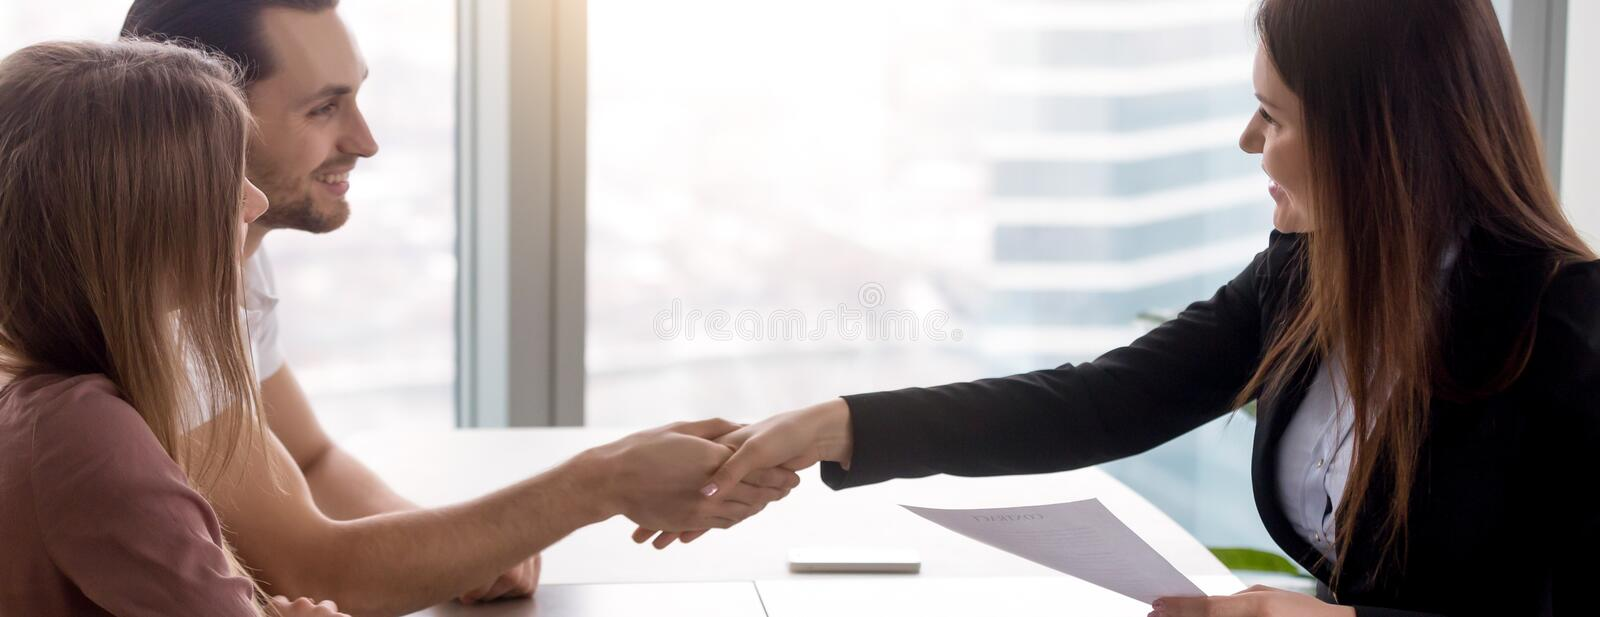 Horizontal image couple signing real estate contract handshaking with realtor stock photography